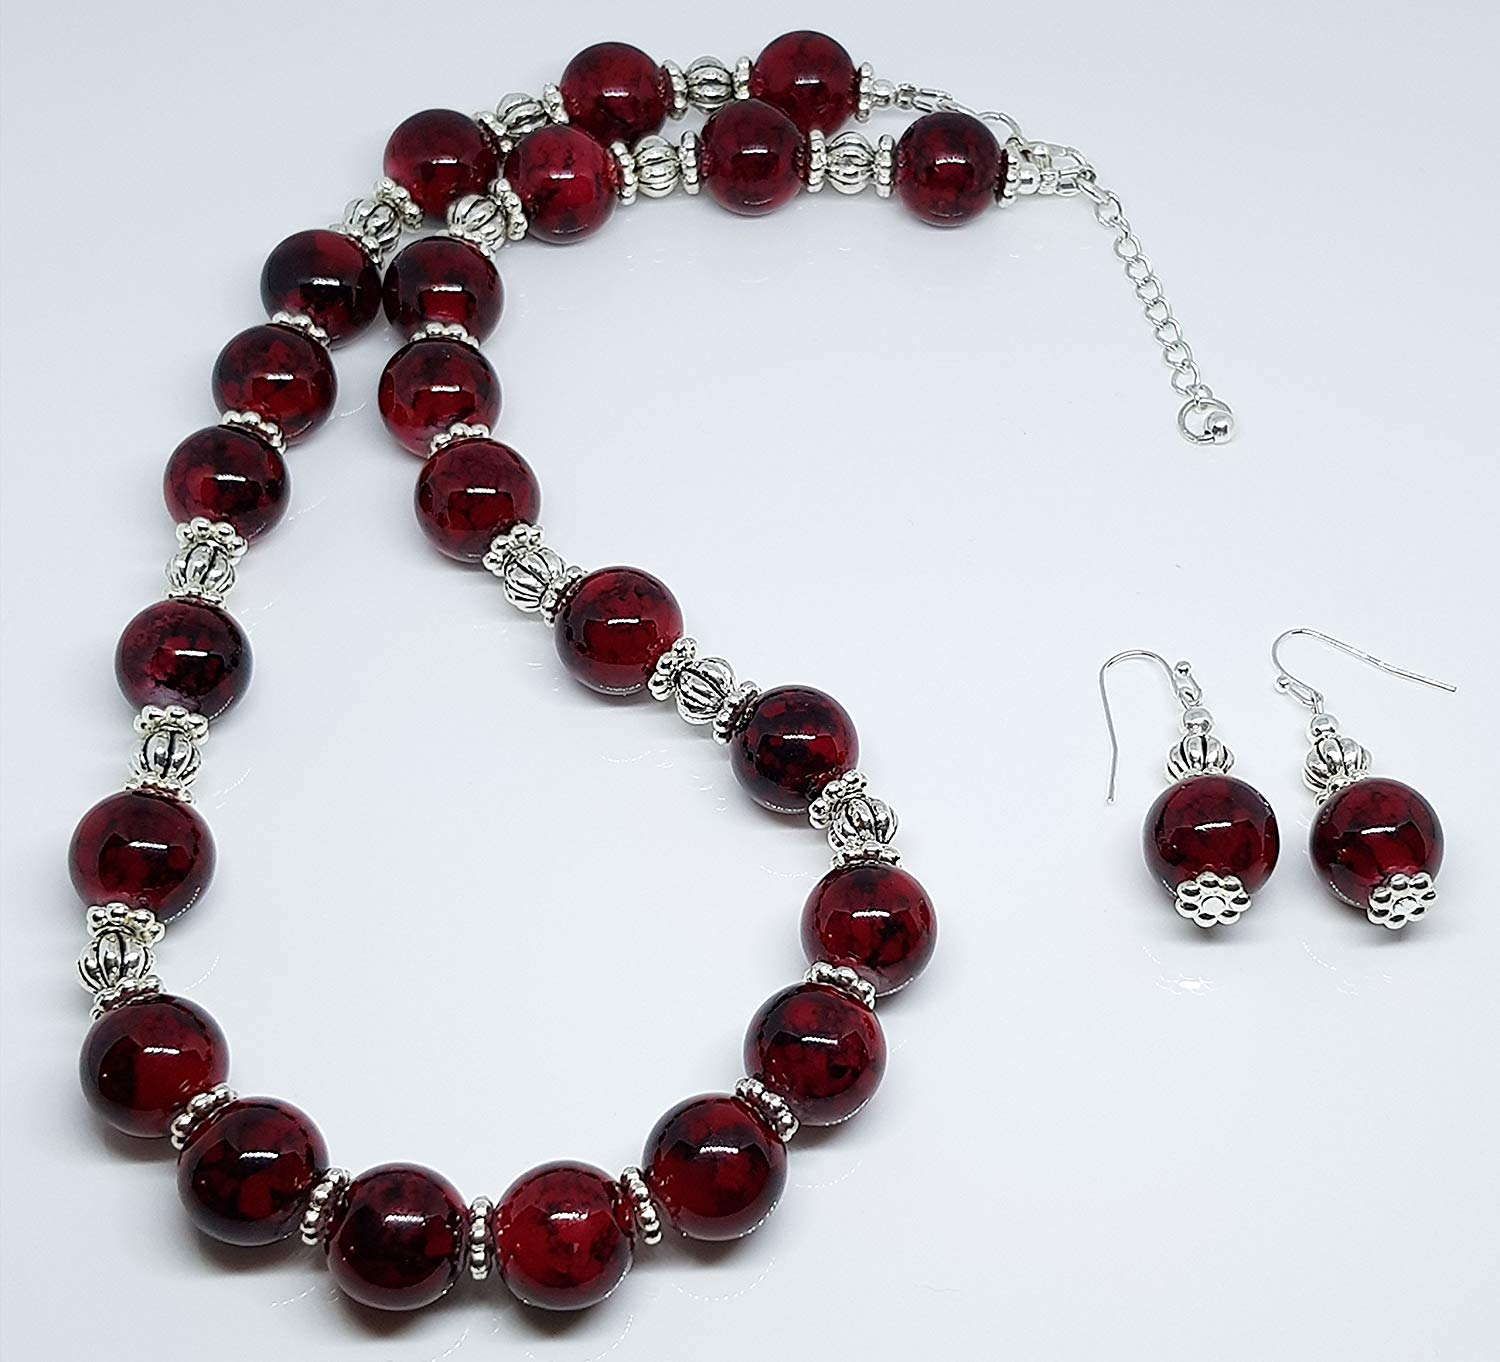 Red Marbleized Glass Beads/Silver Plated Metal Dot Rondelles/Antique Sterling Silver Plated Lantern Beaded Duo Set